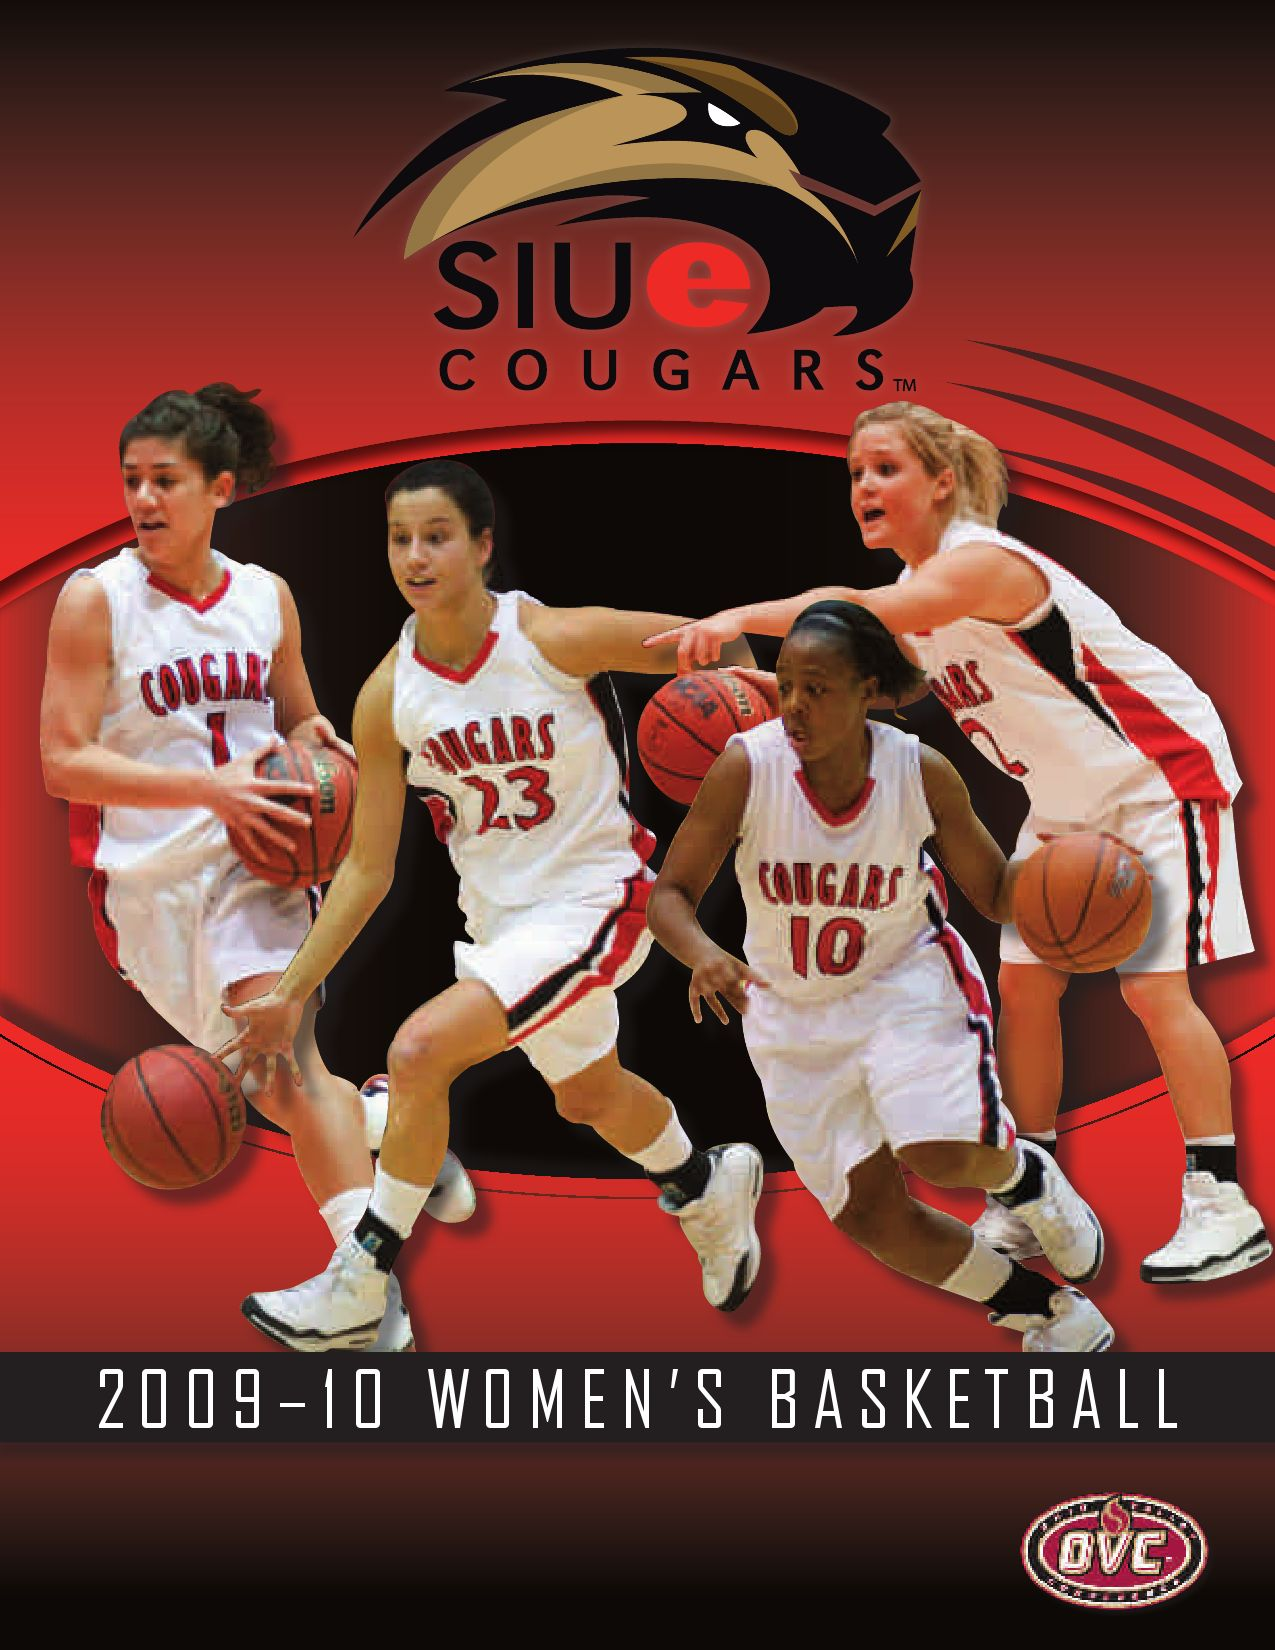 2009-10 Southern Illinois University Edwardsville Women's Basketball Guide  by SIUE Athletics - issuu